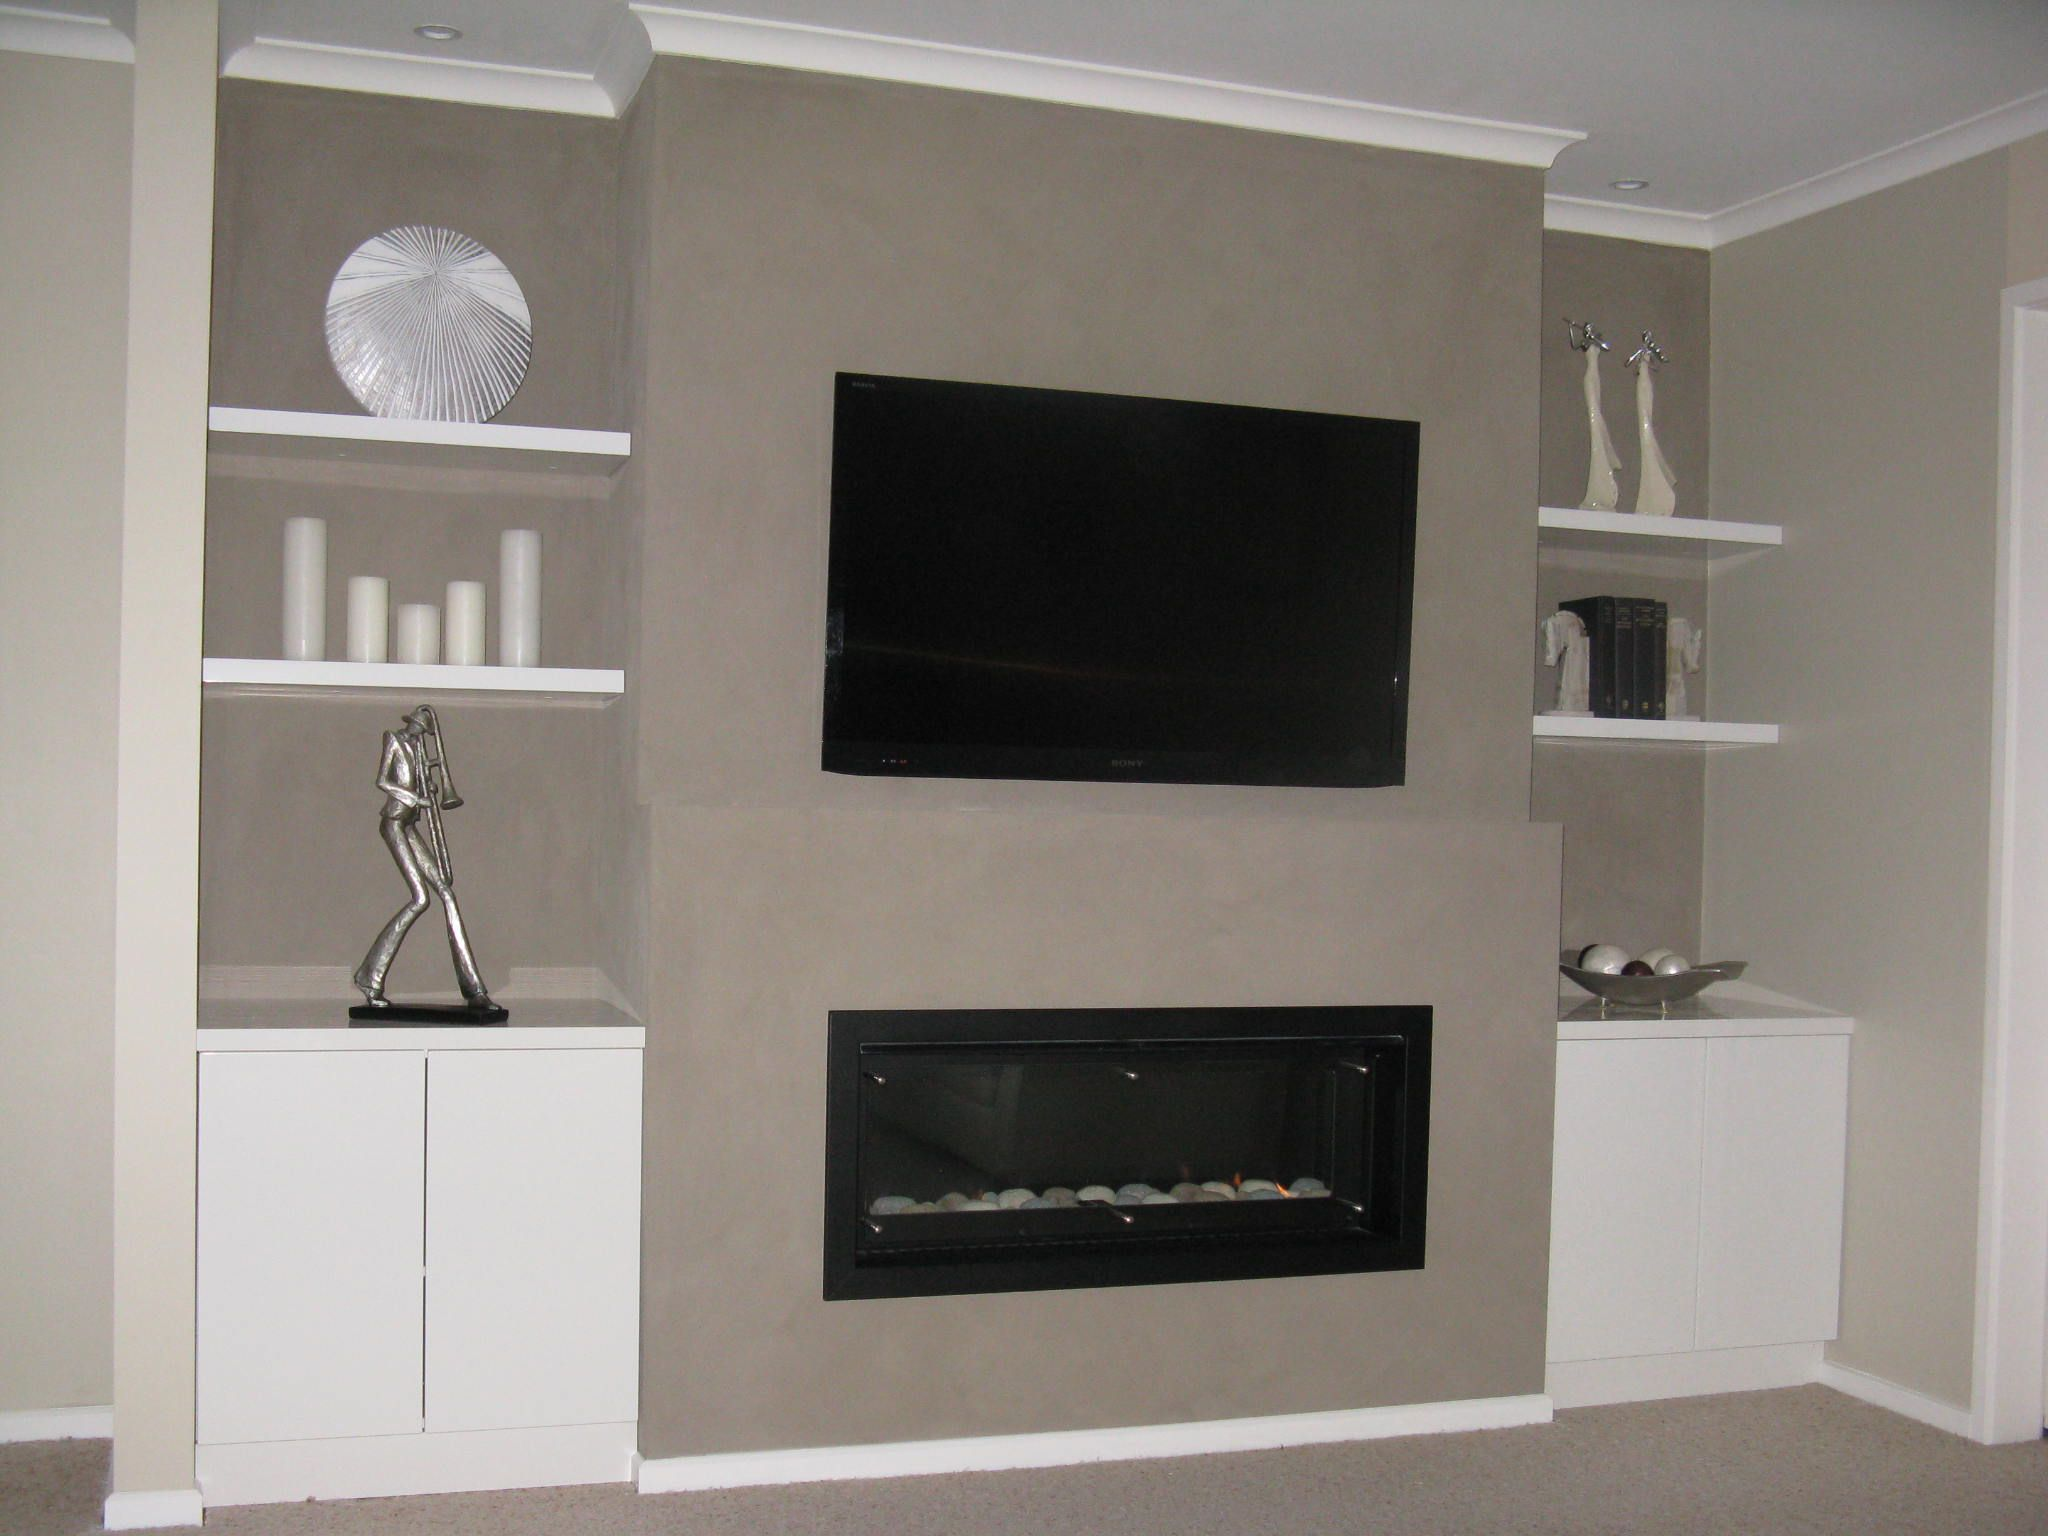 Stair Box In Bedroom: Ethanol Fireplace With Tv Above - Google Search